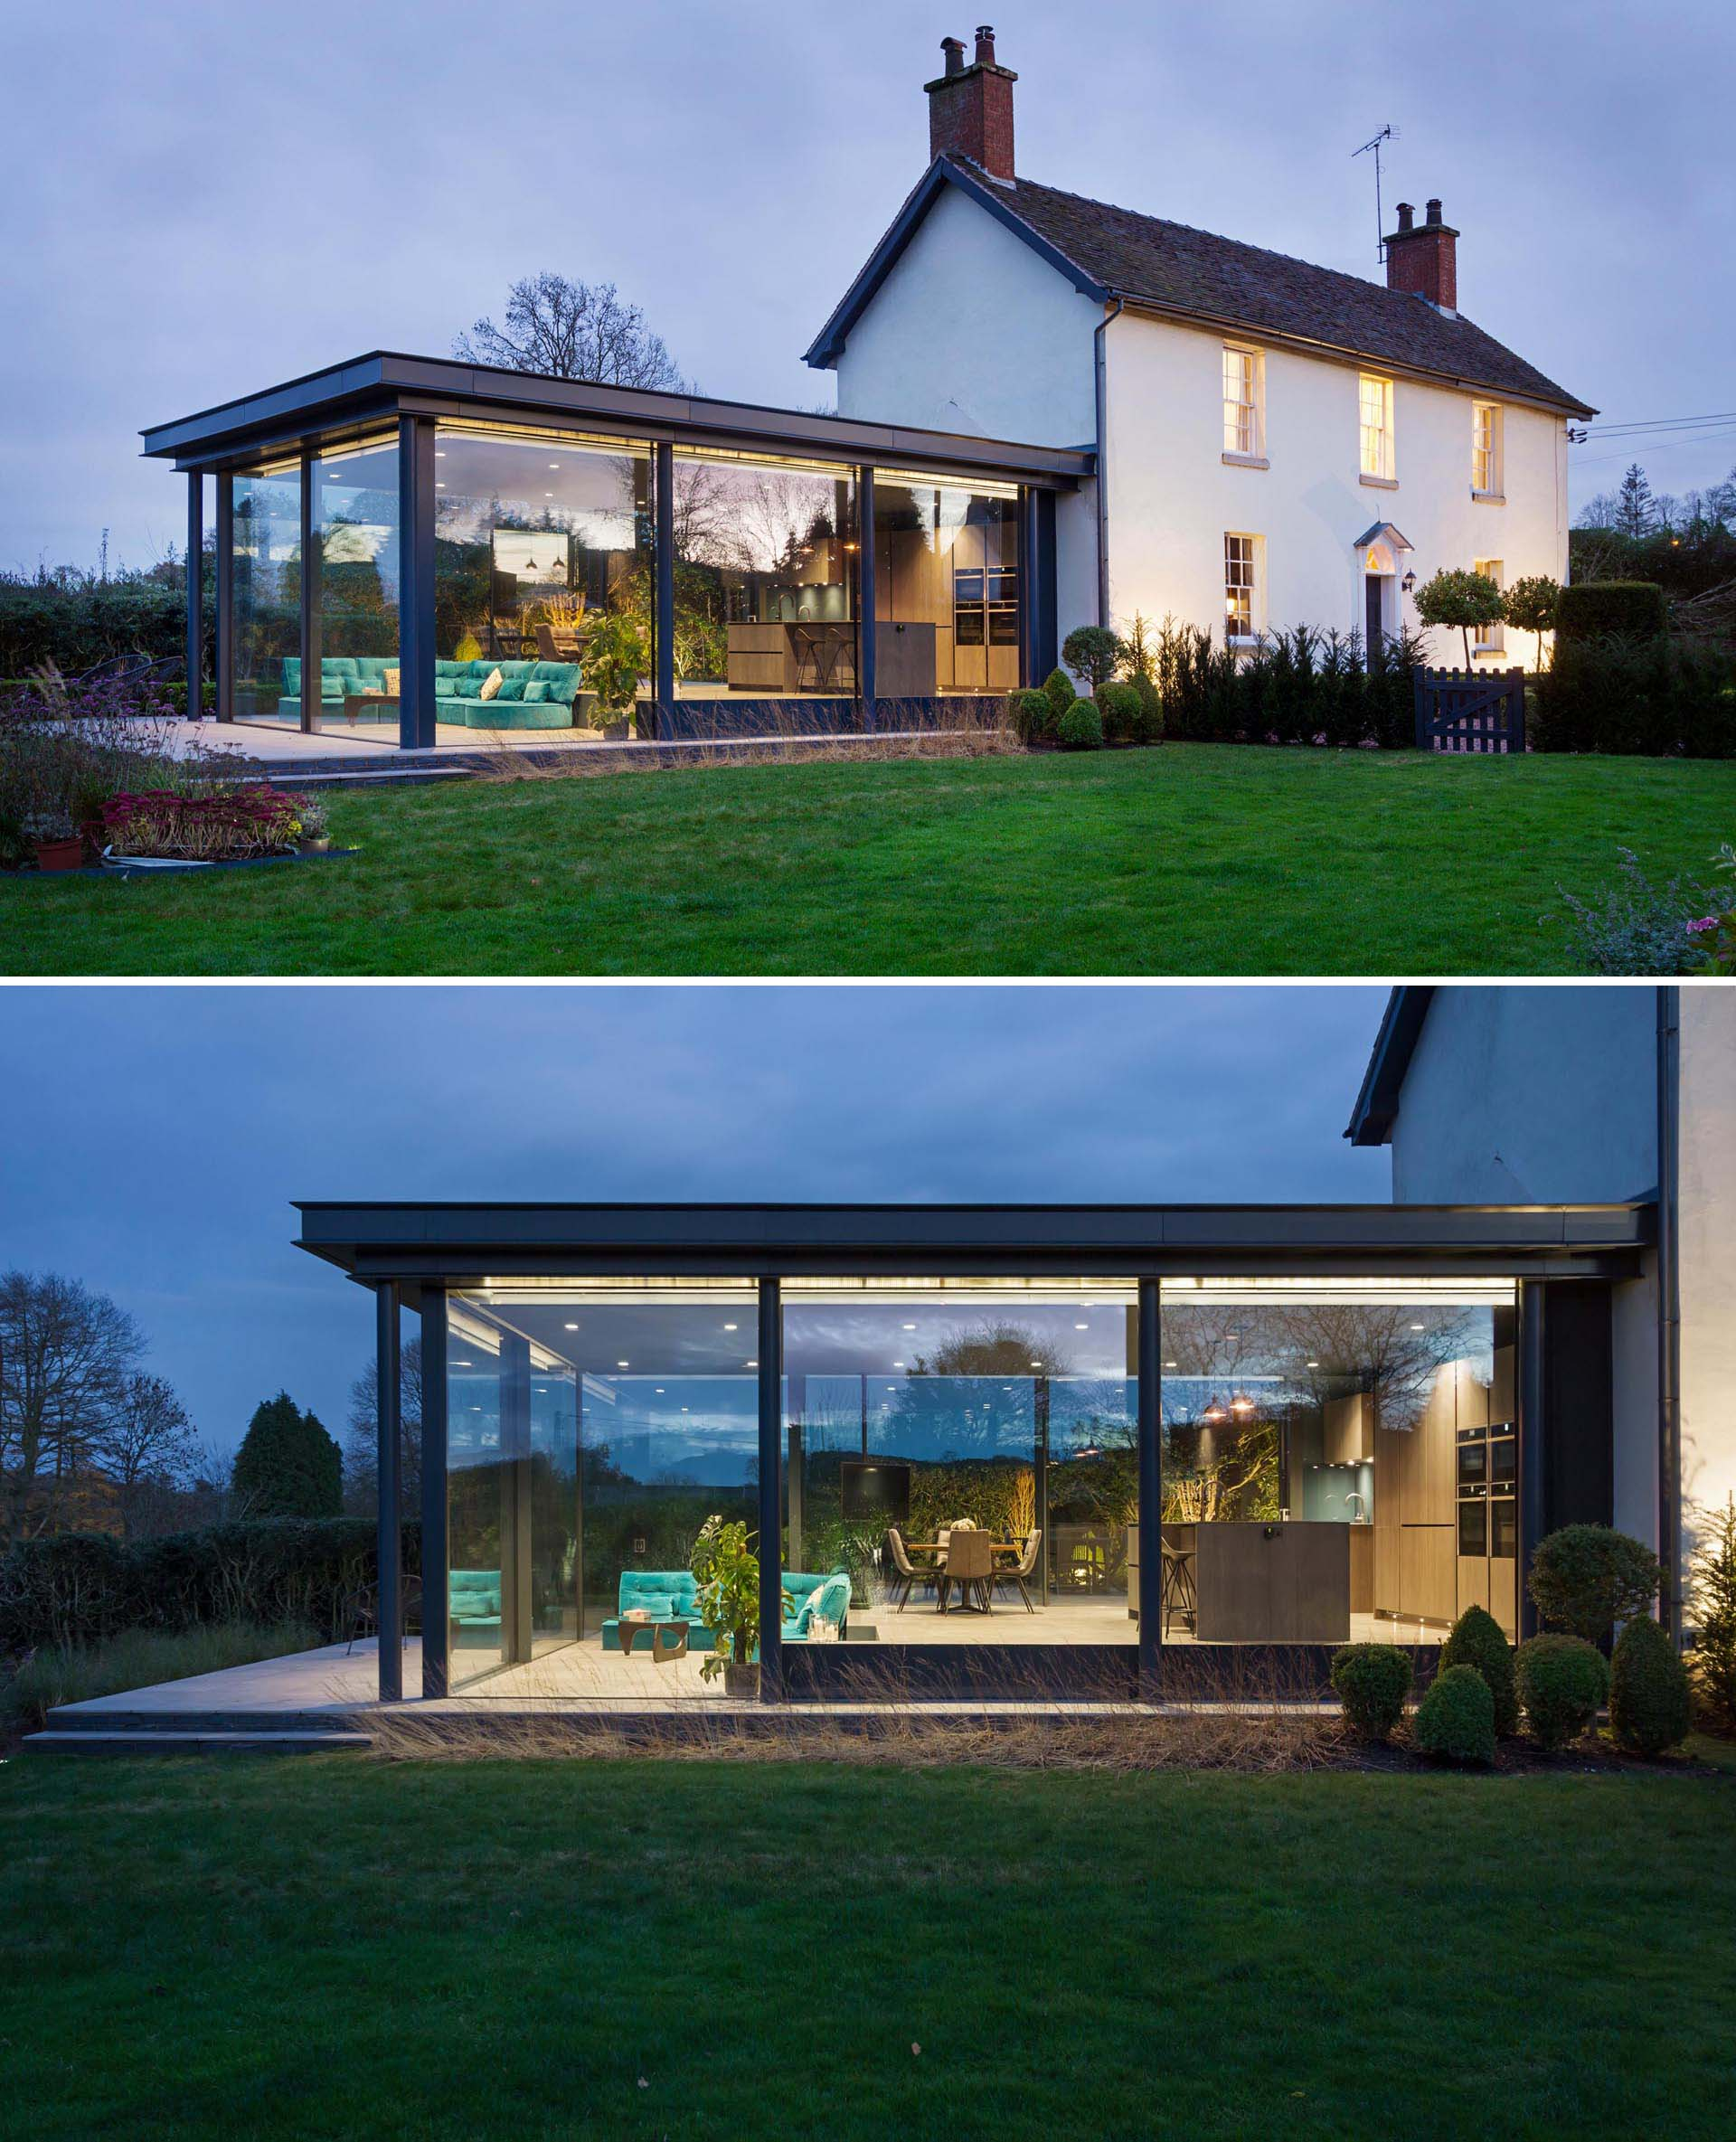 A modern glass addition for a heritage home in England.